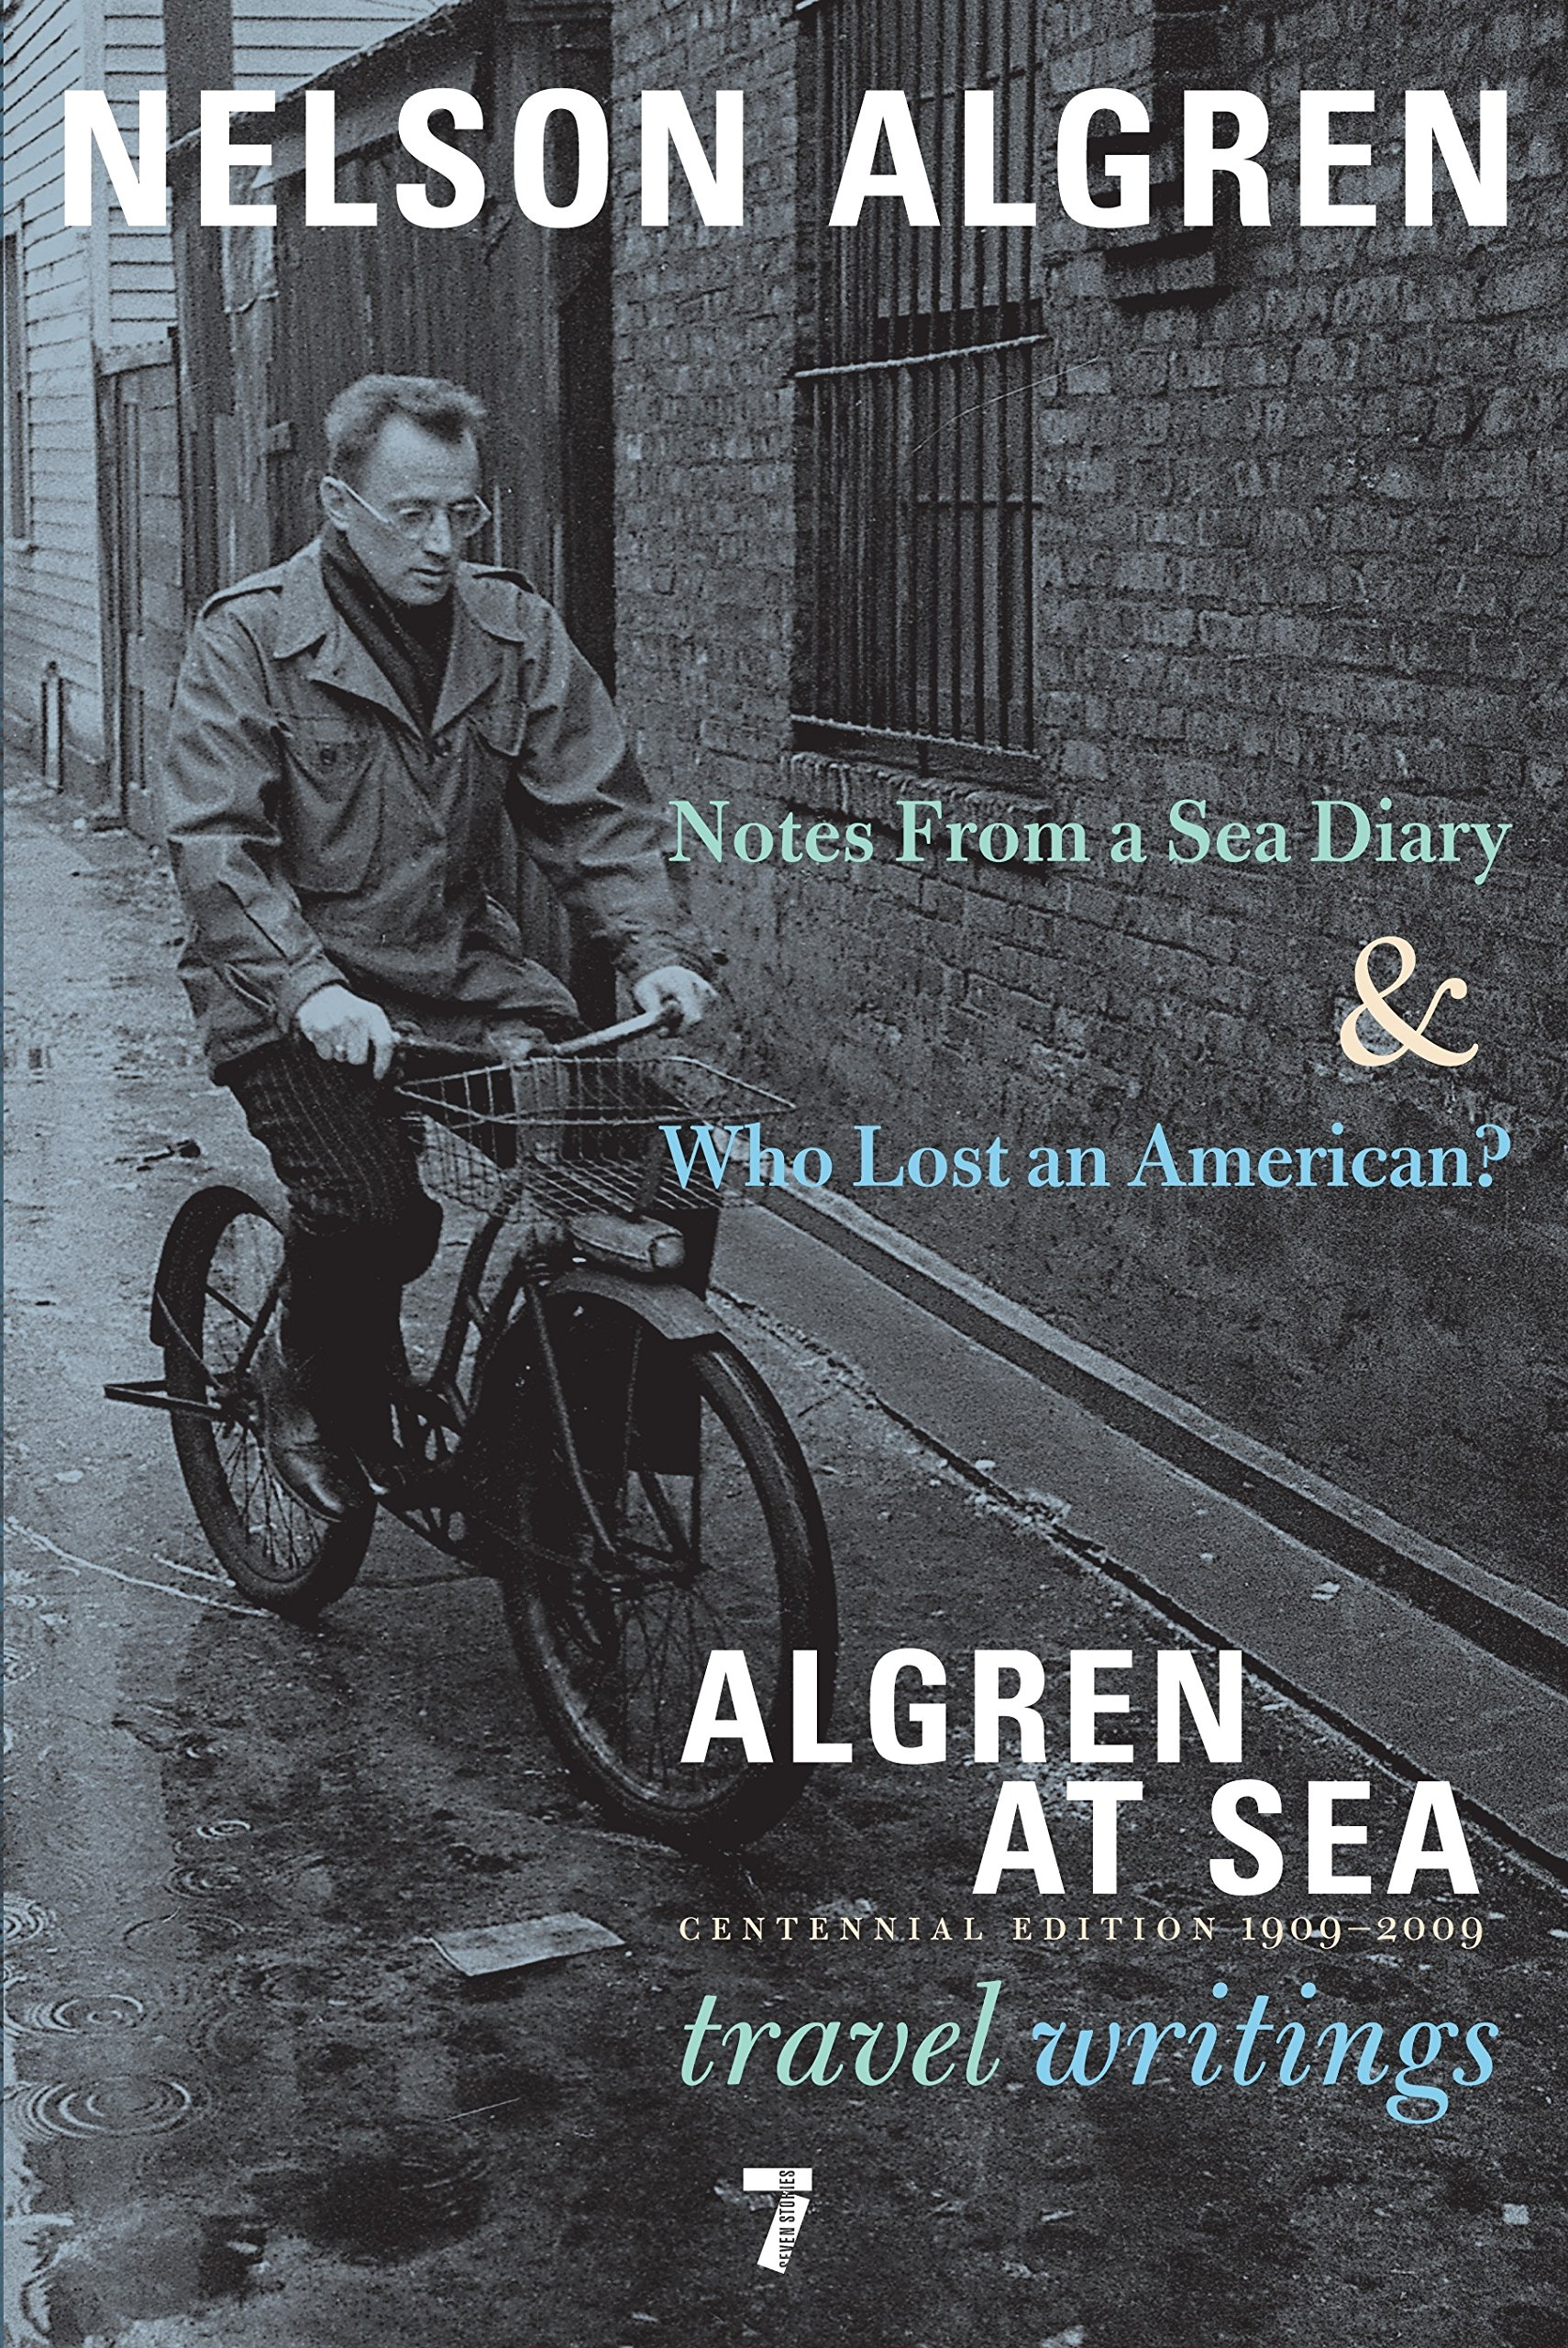 Algren at Sea: Notes from a Sea Diary & Who Lost an American?#Travel Writings